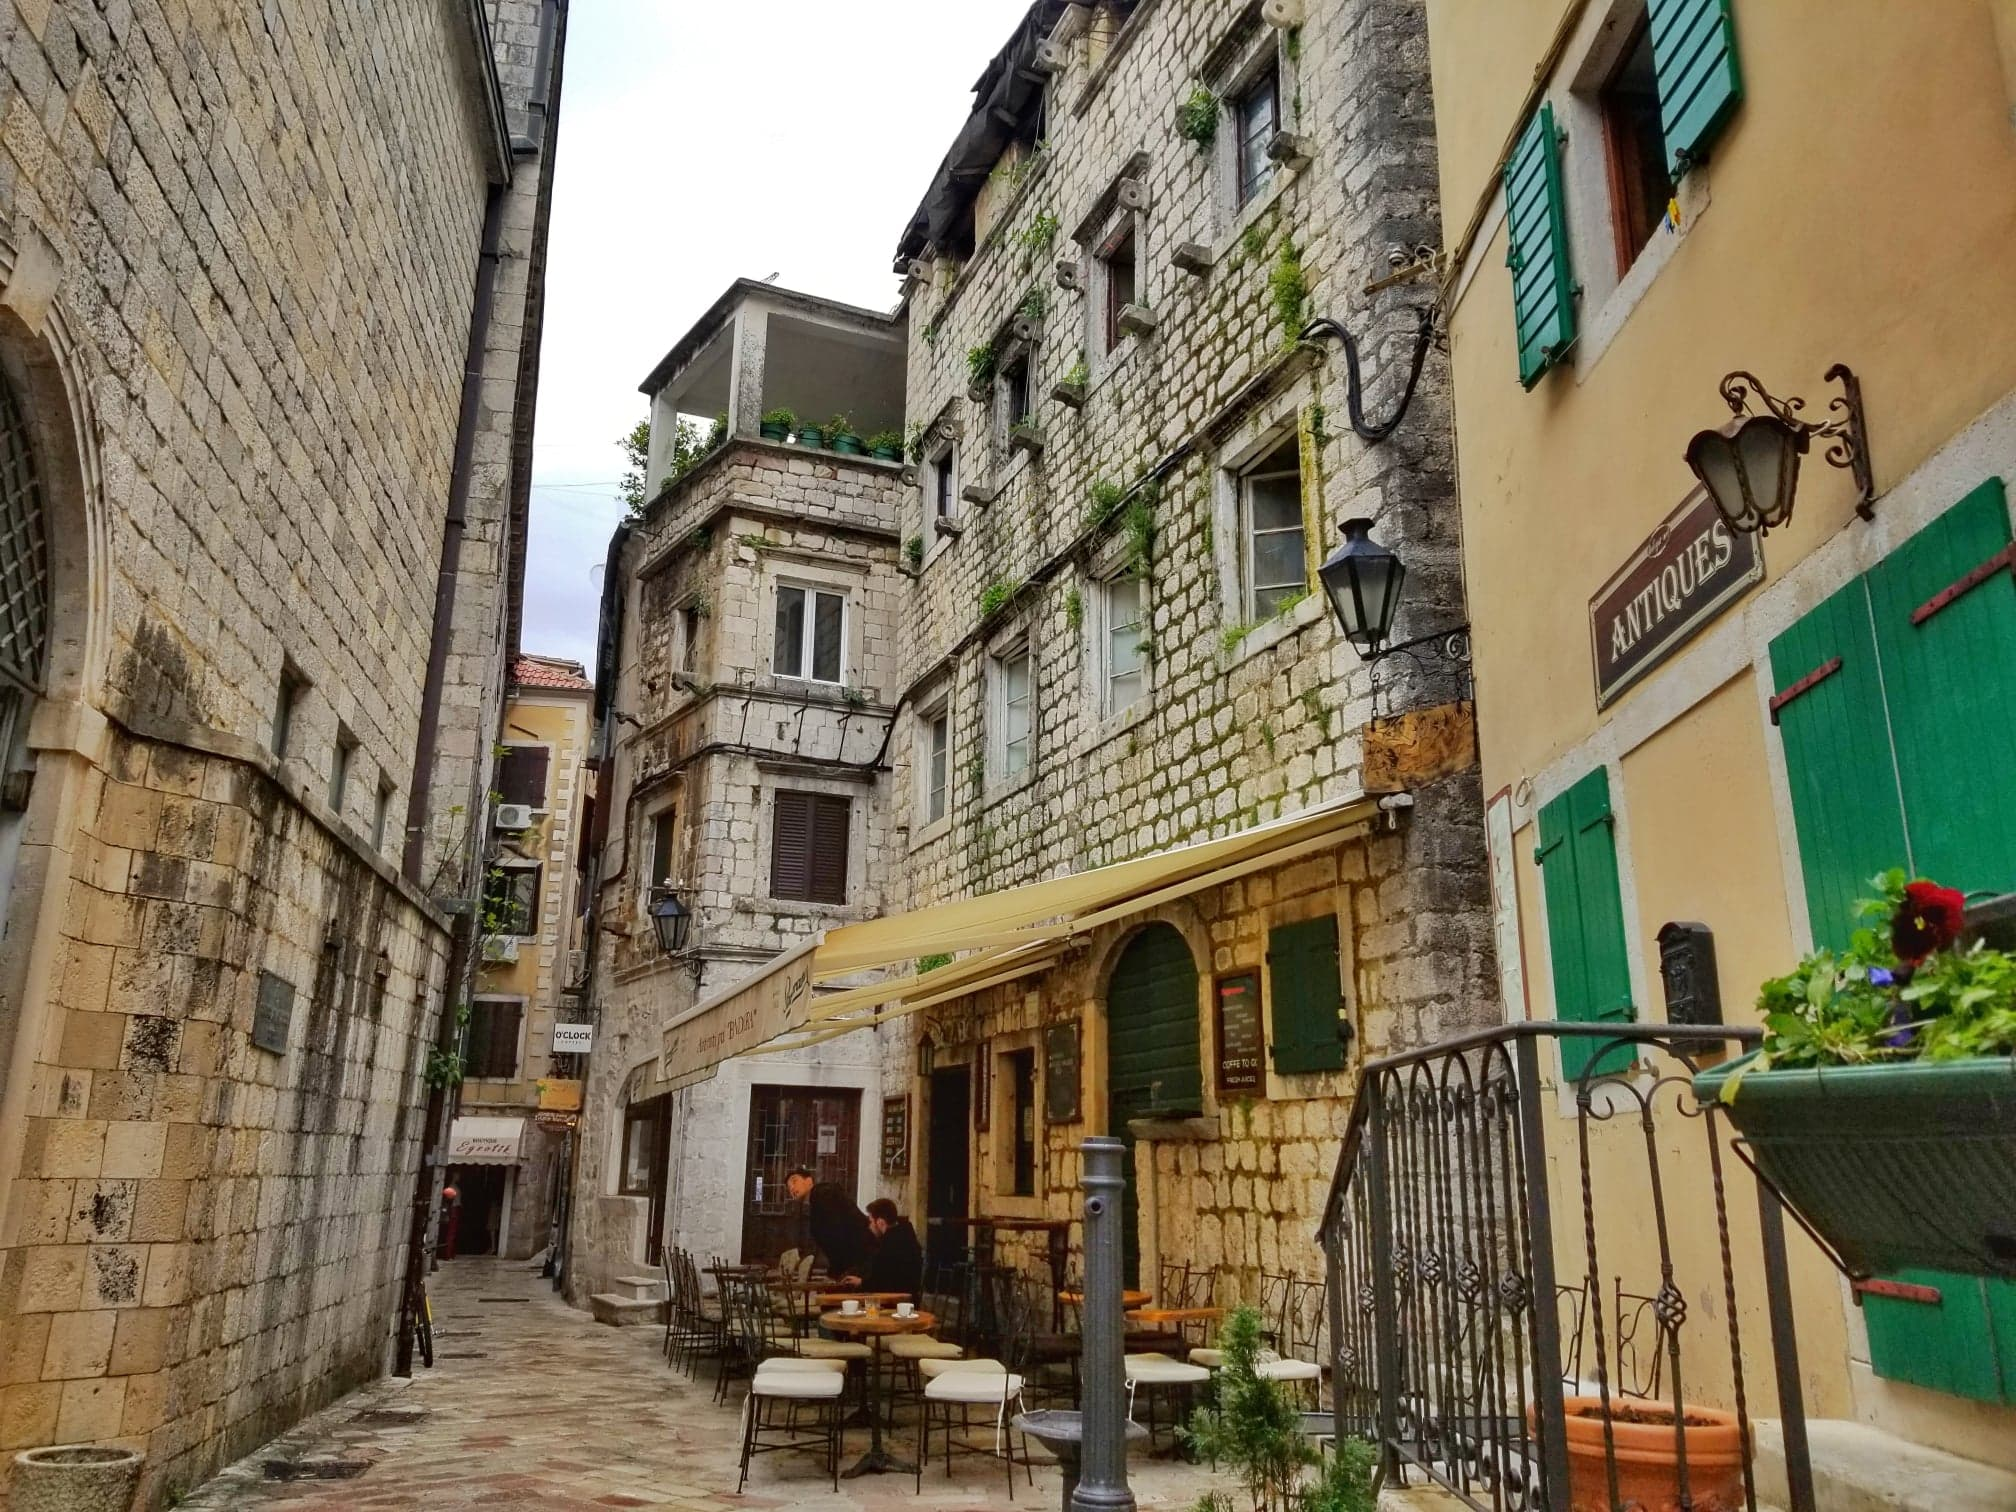 streets of old Kotor town - sightseeing